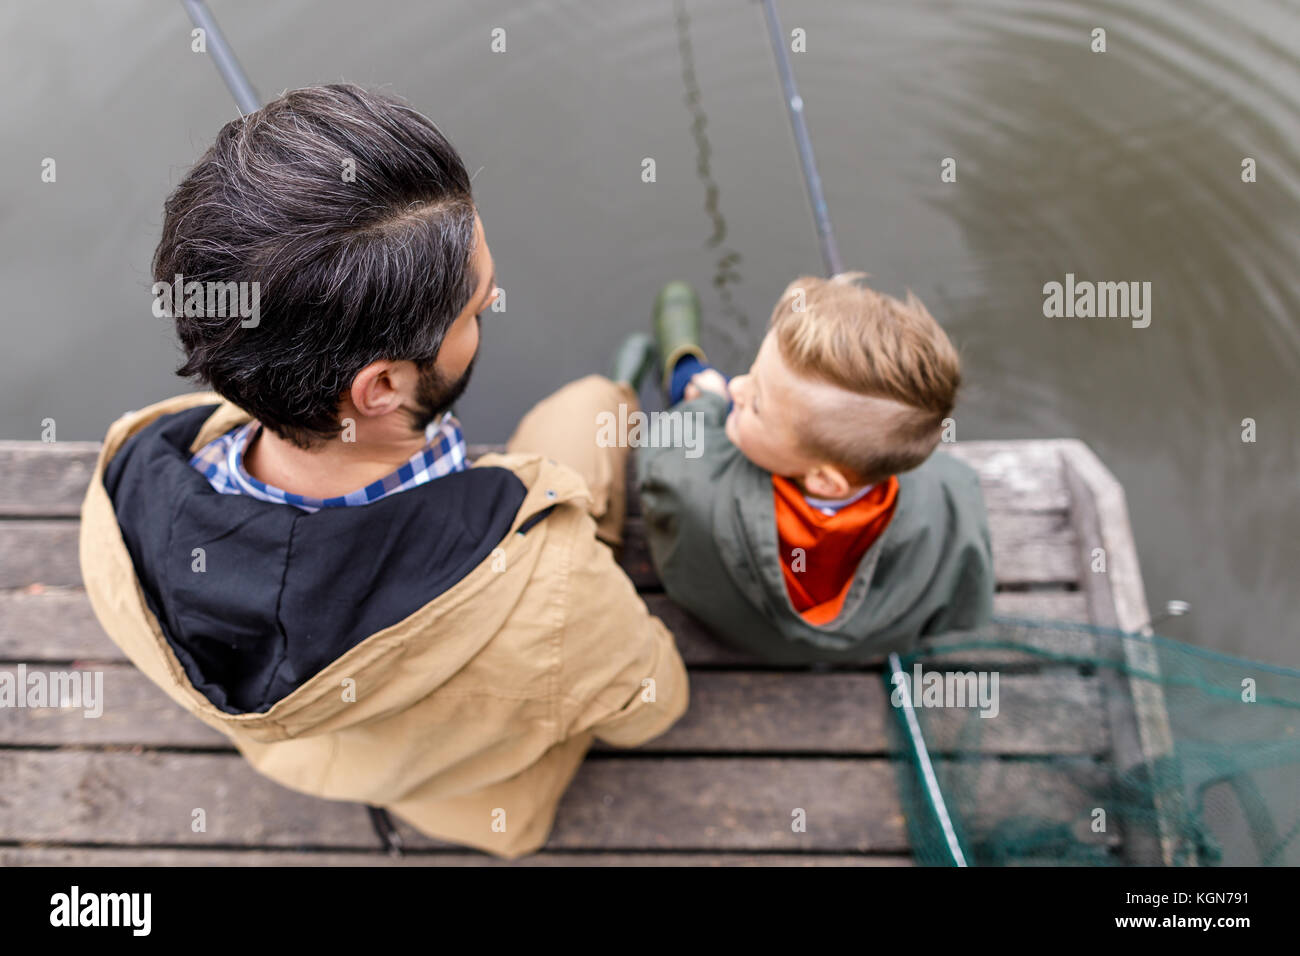 fishing together with rods  - Stock Image